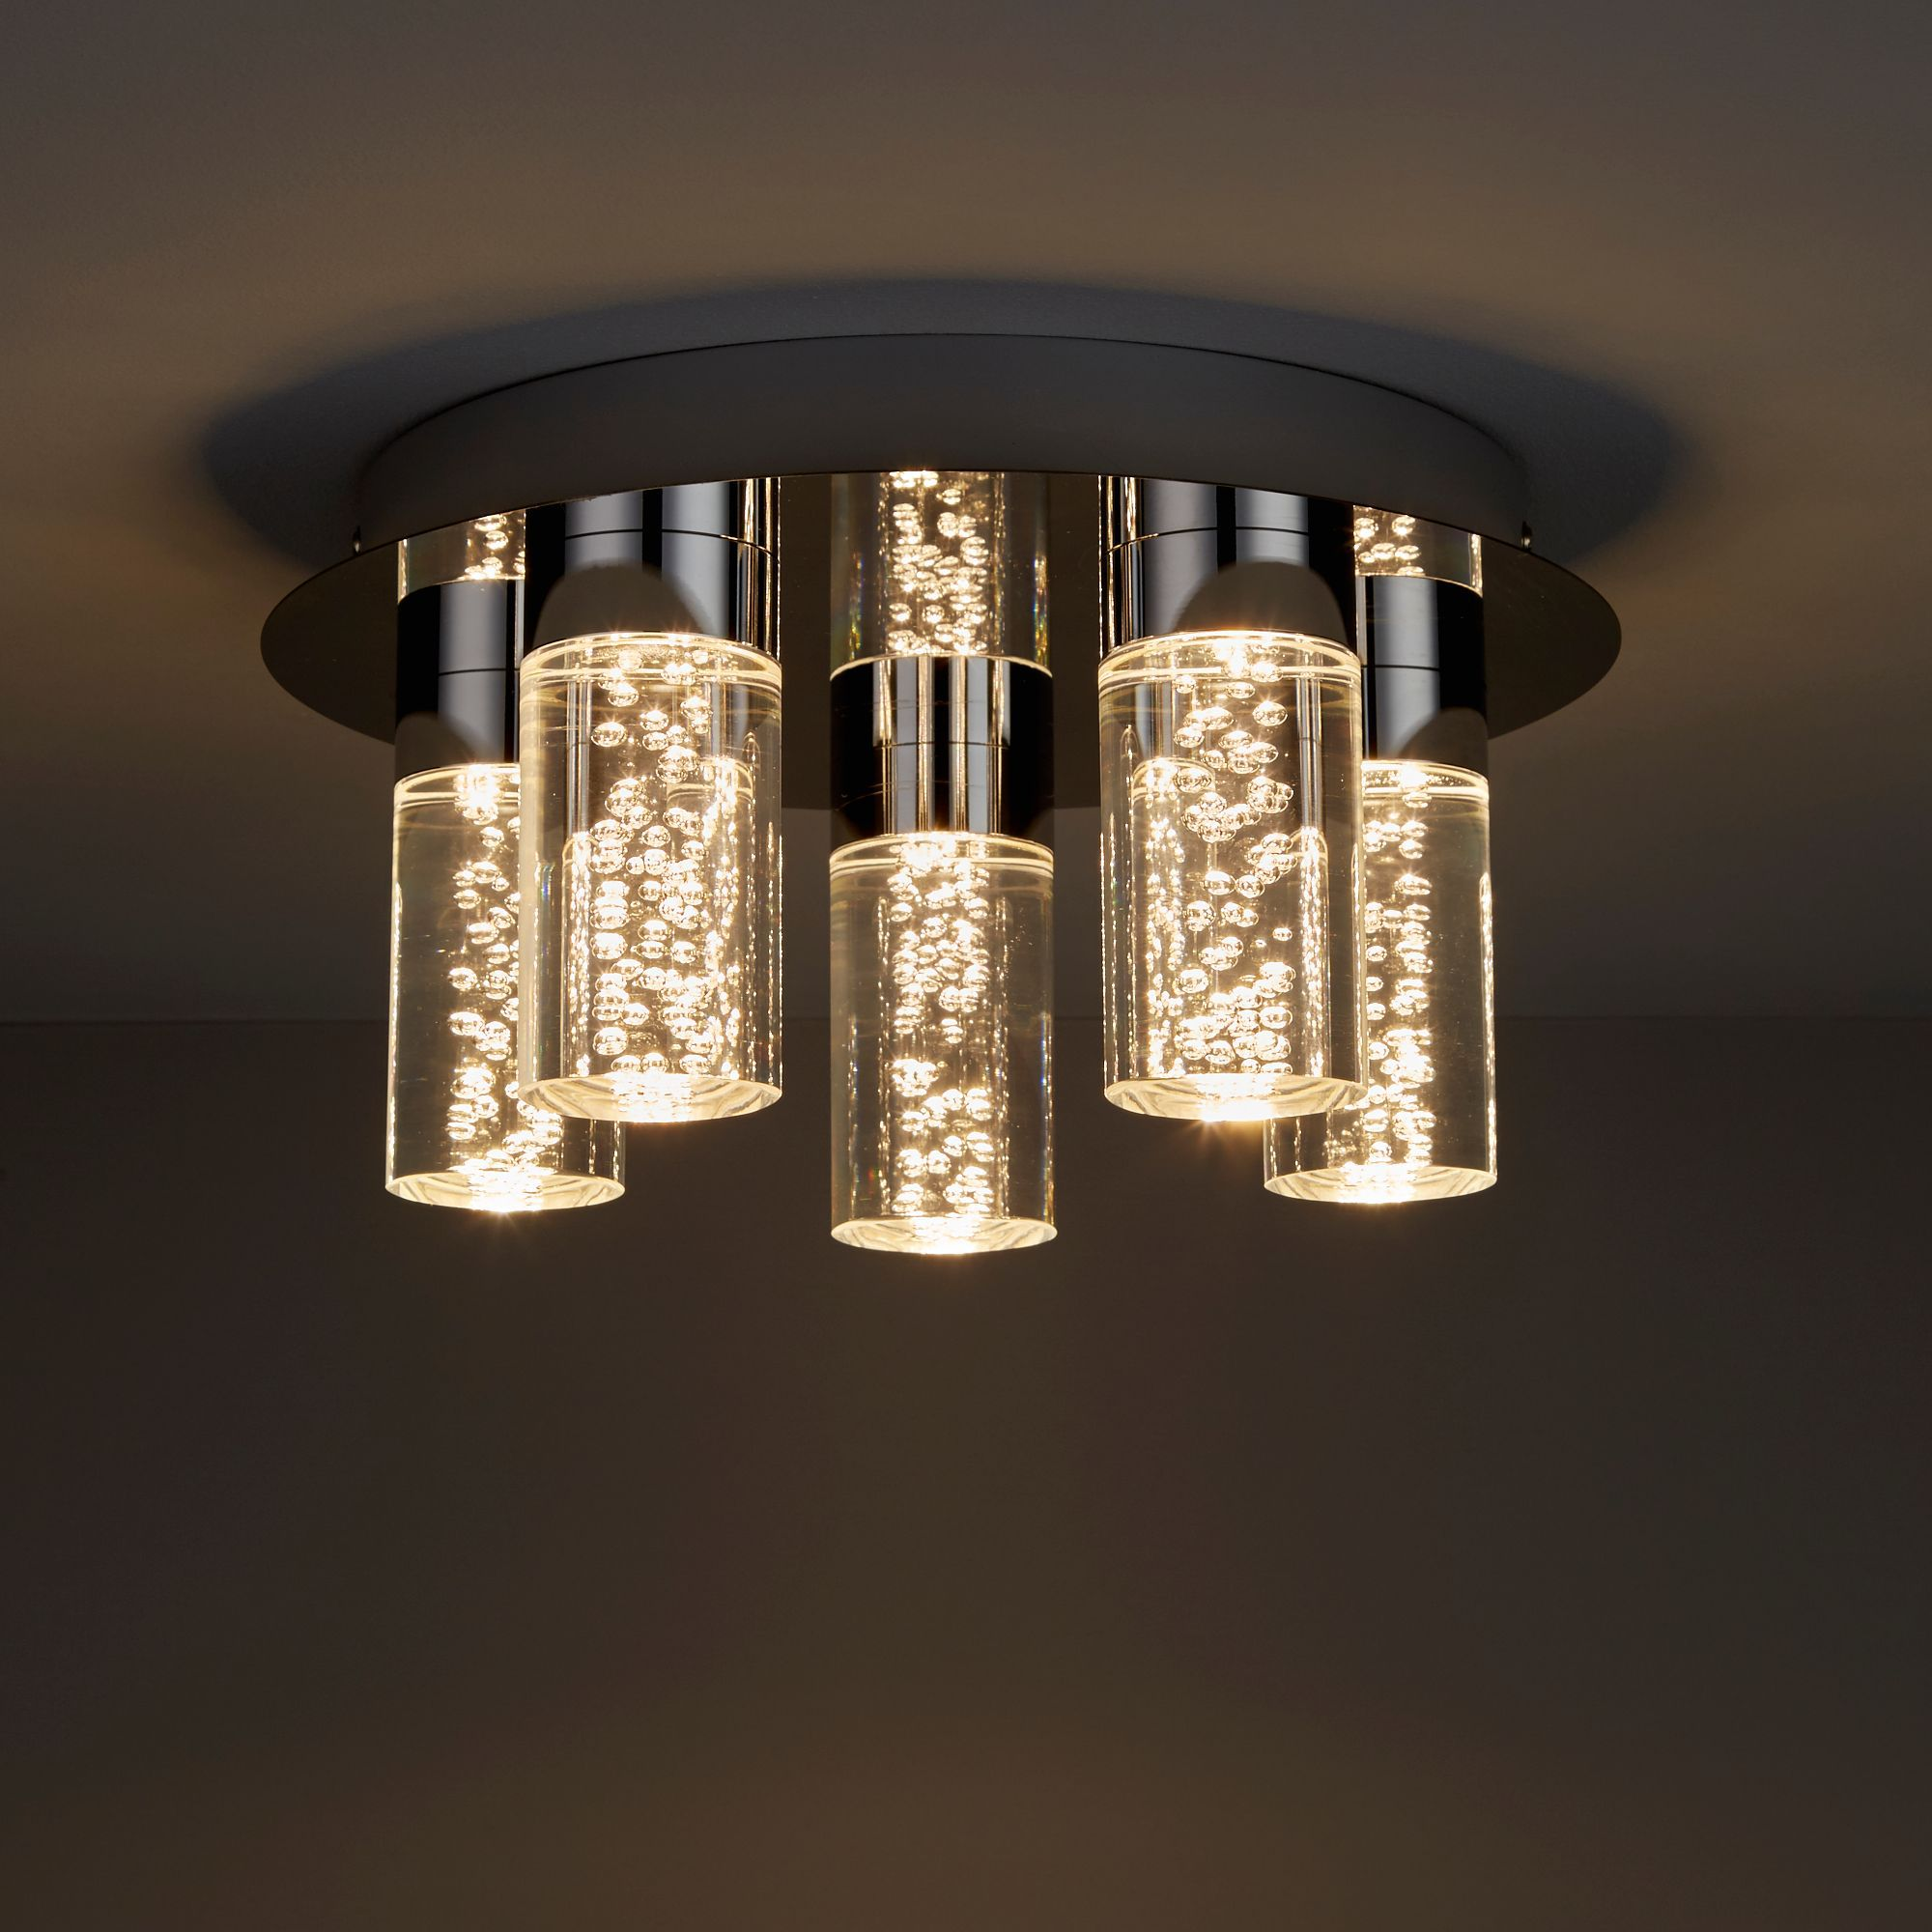 Hubble Brushed Chrome Effect 5 Lamp Bathroom Ceiling Light Departments Diy At B Q